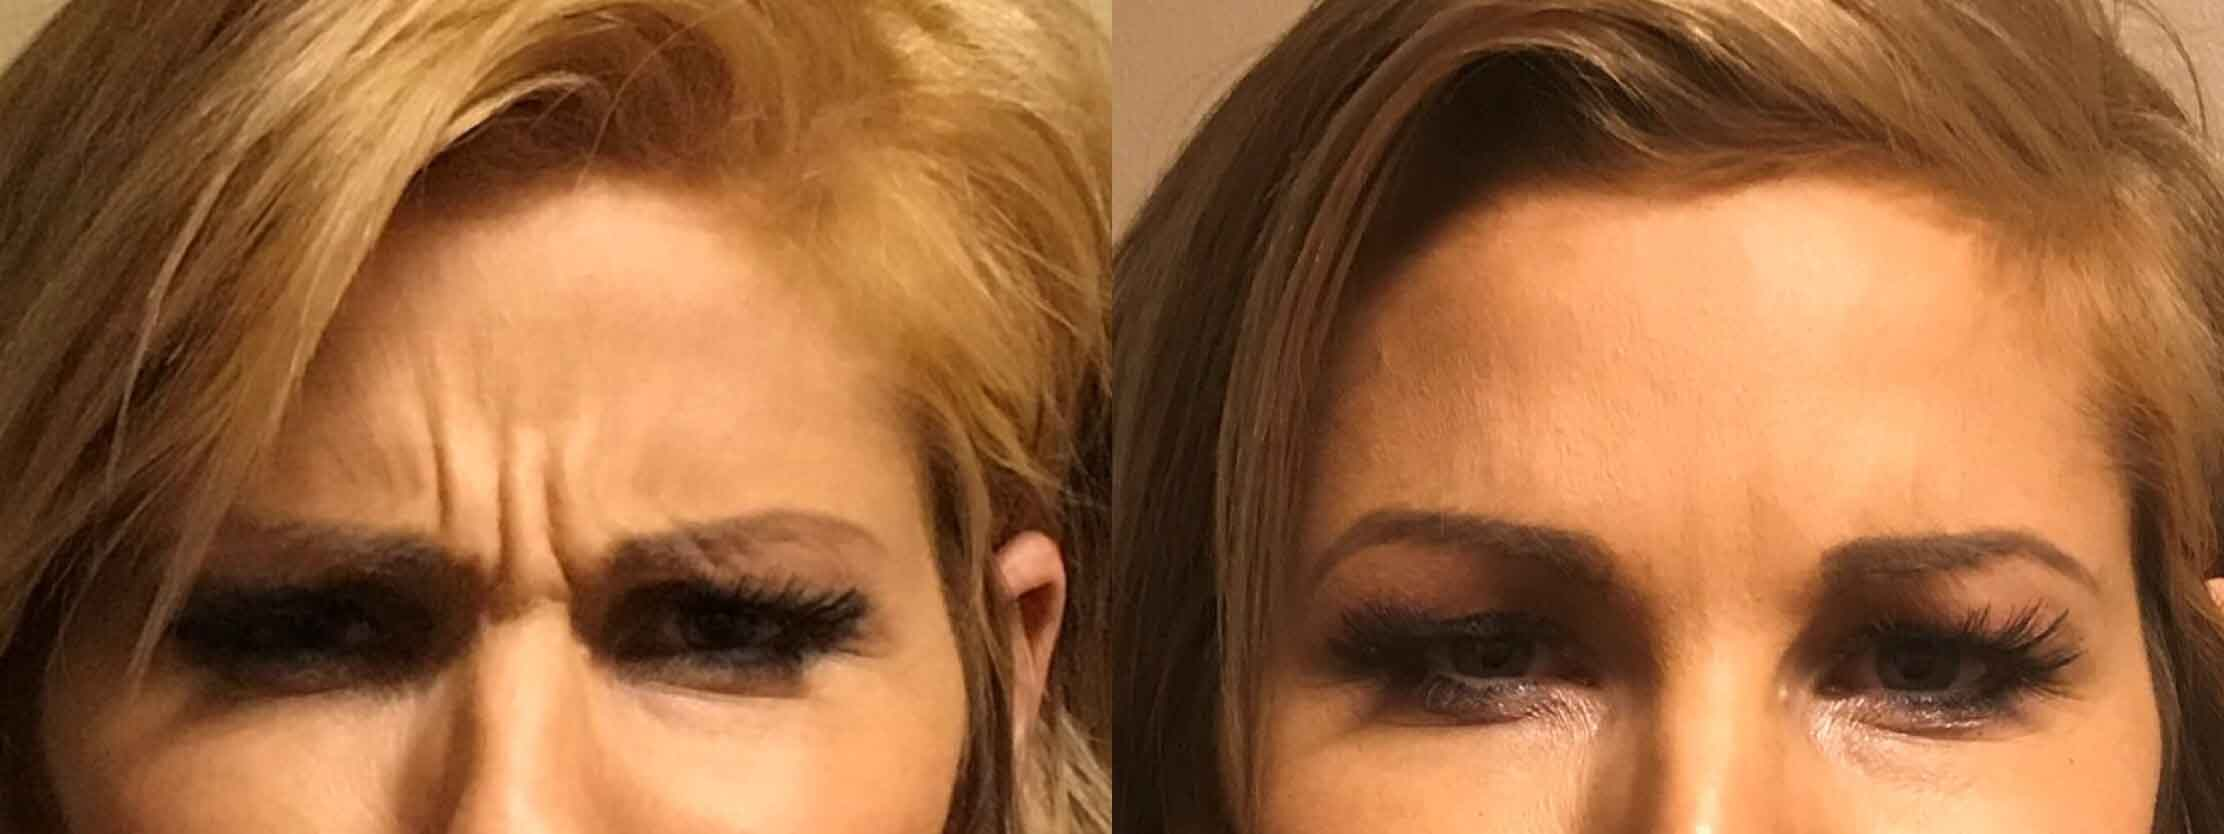 A before and After Comparison of a patient who received a botox treatment at seattle plastic surgery